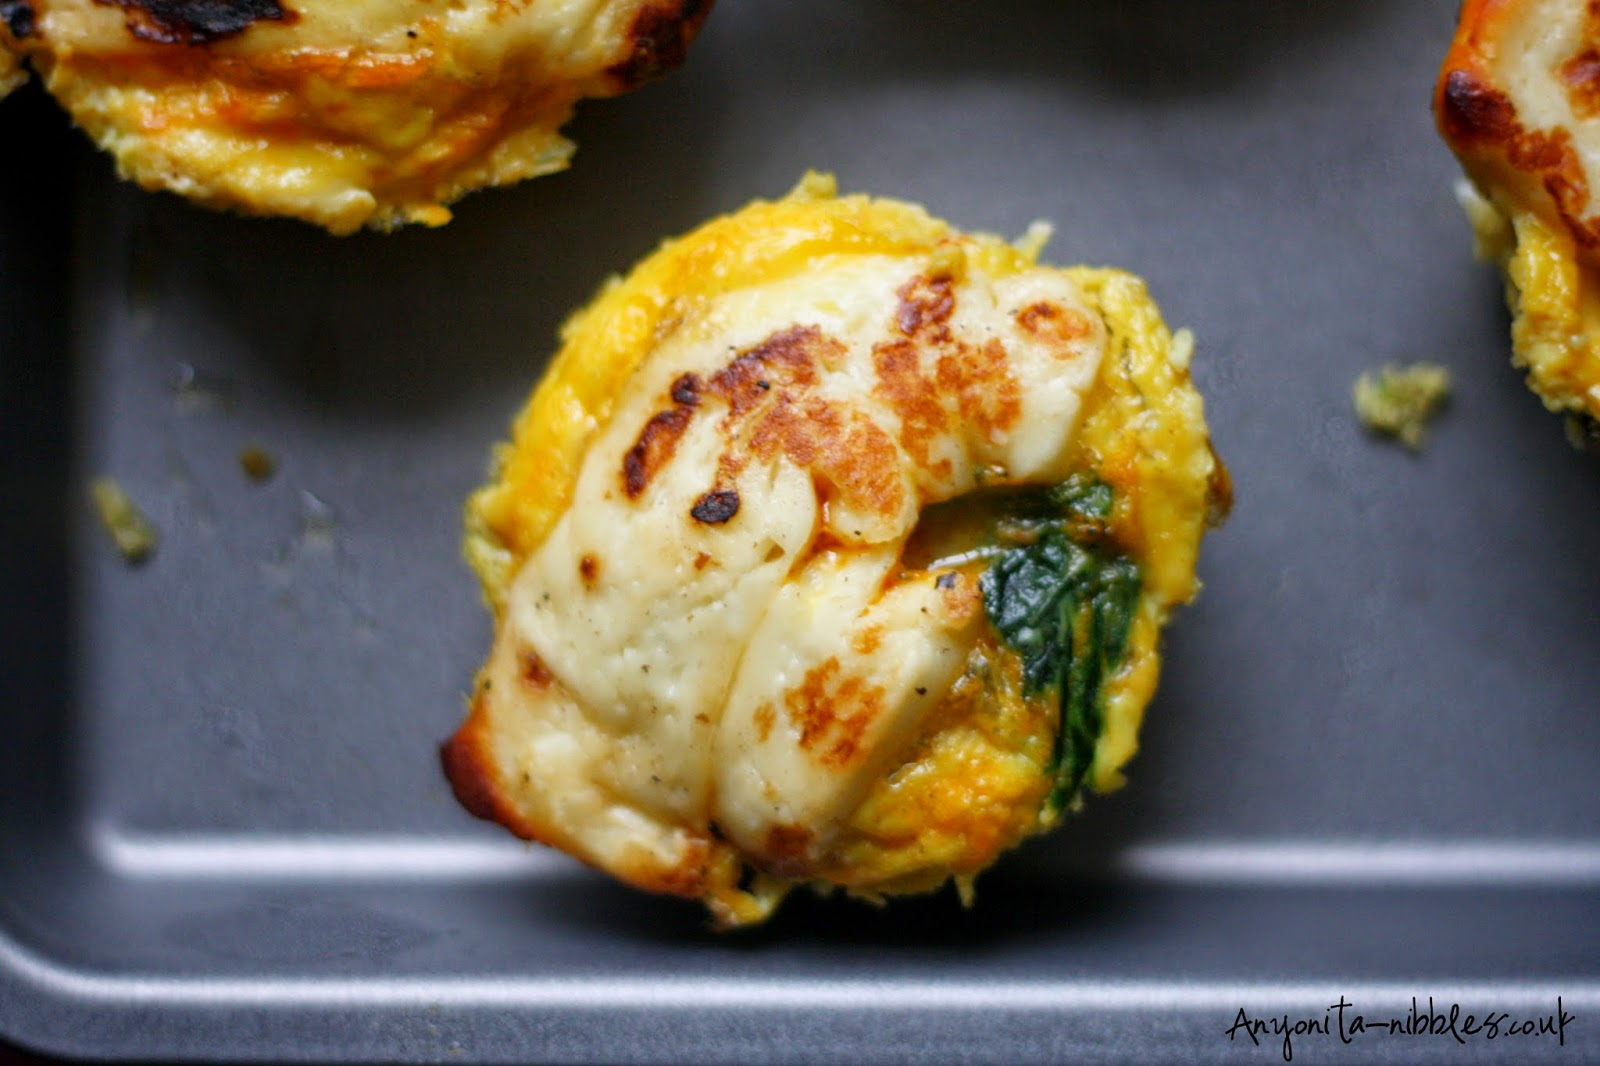 A single serving gluten free halloumi chese by Anyonita-nibbles.co.uk